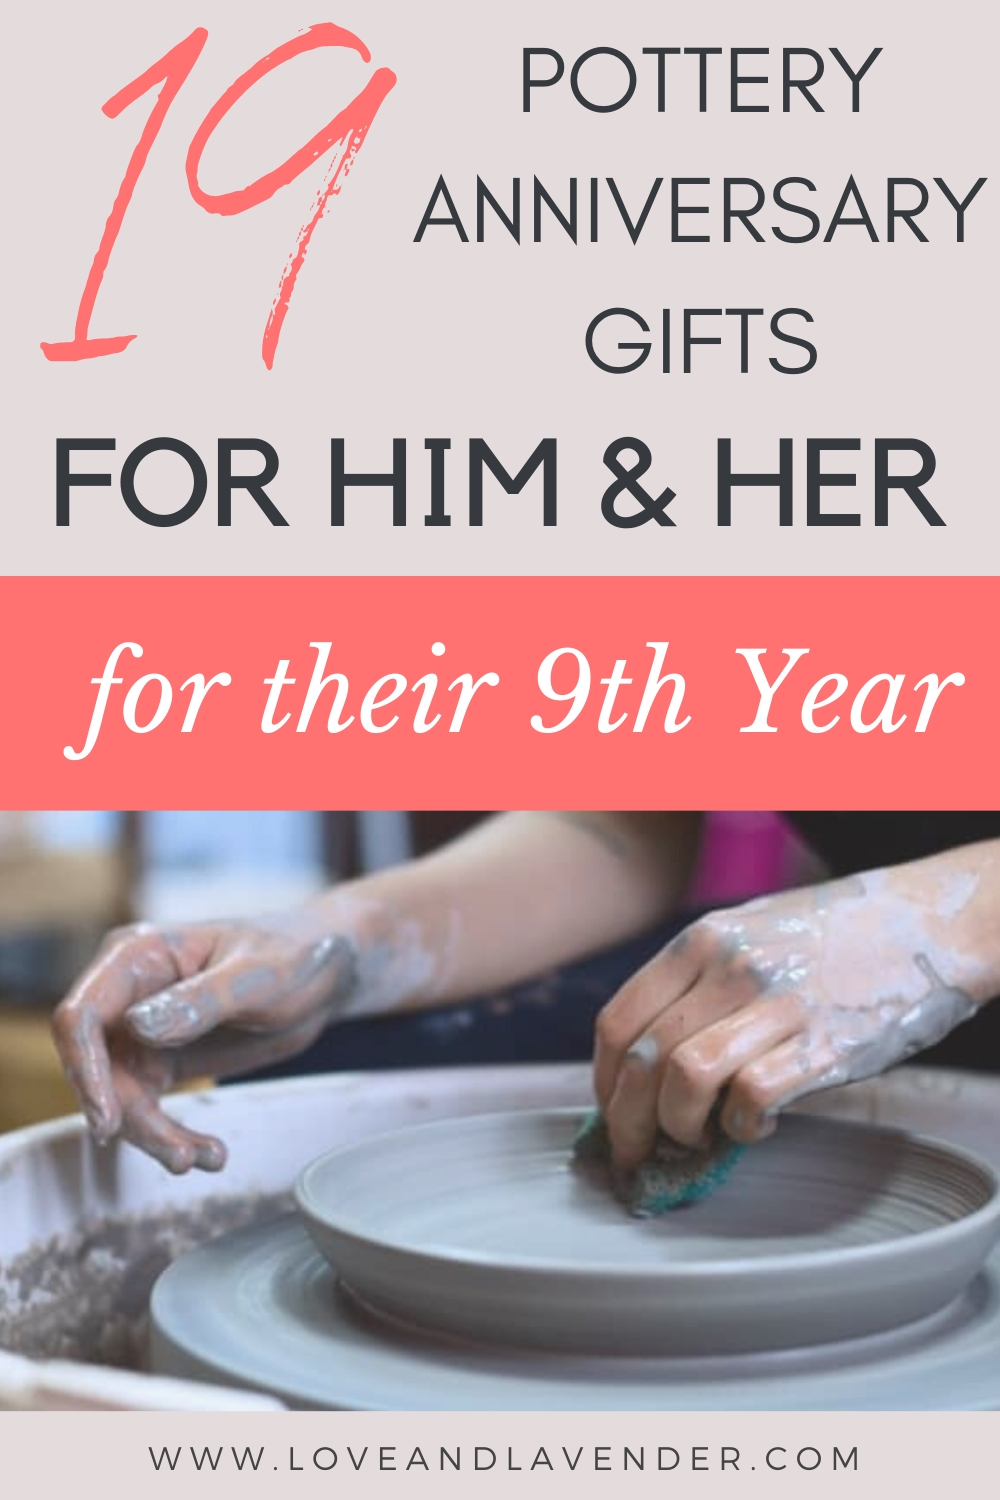 9 Pottery Wedding Anniversary Gifts (9th Year) for Him & Her